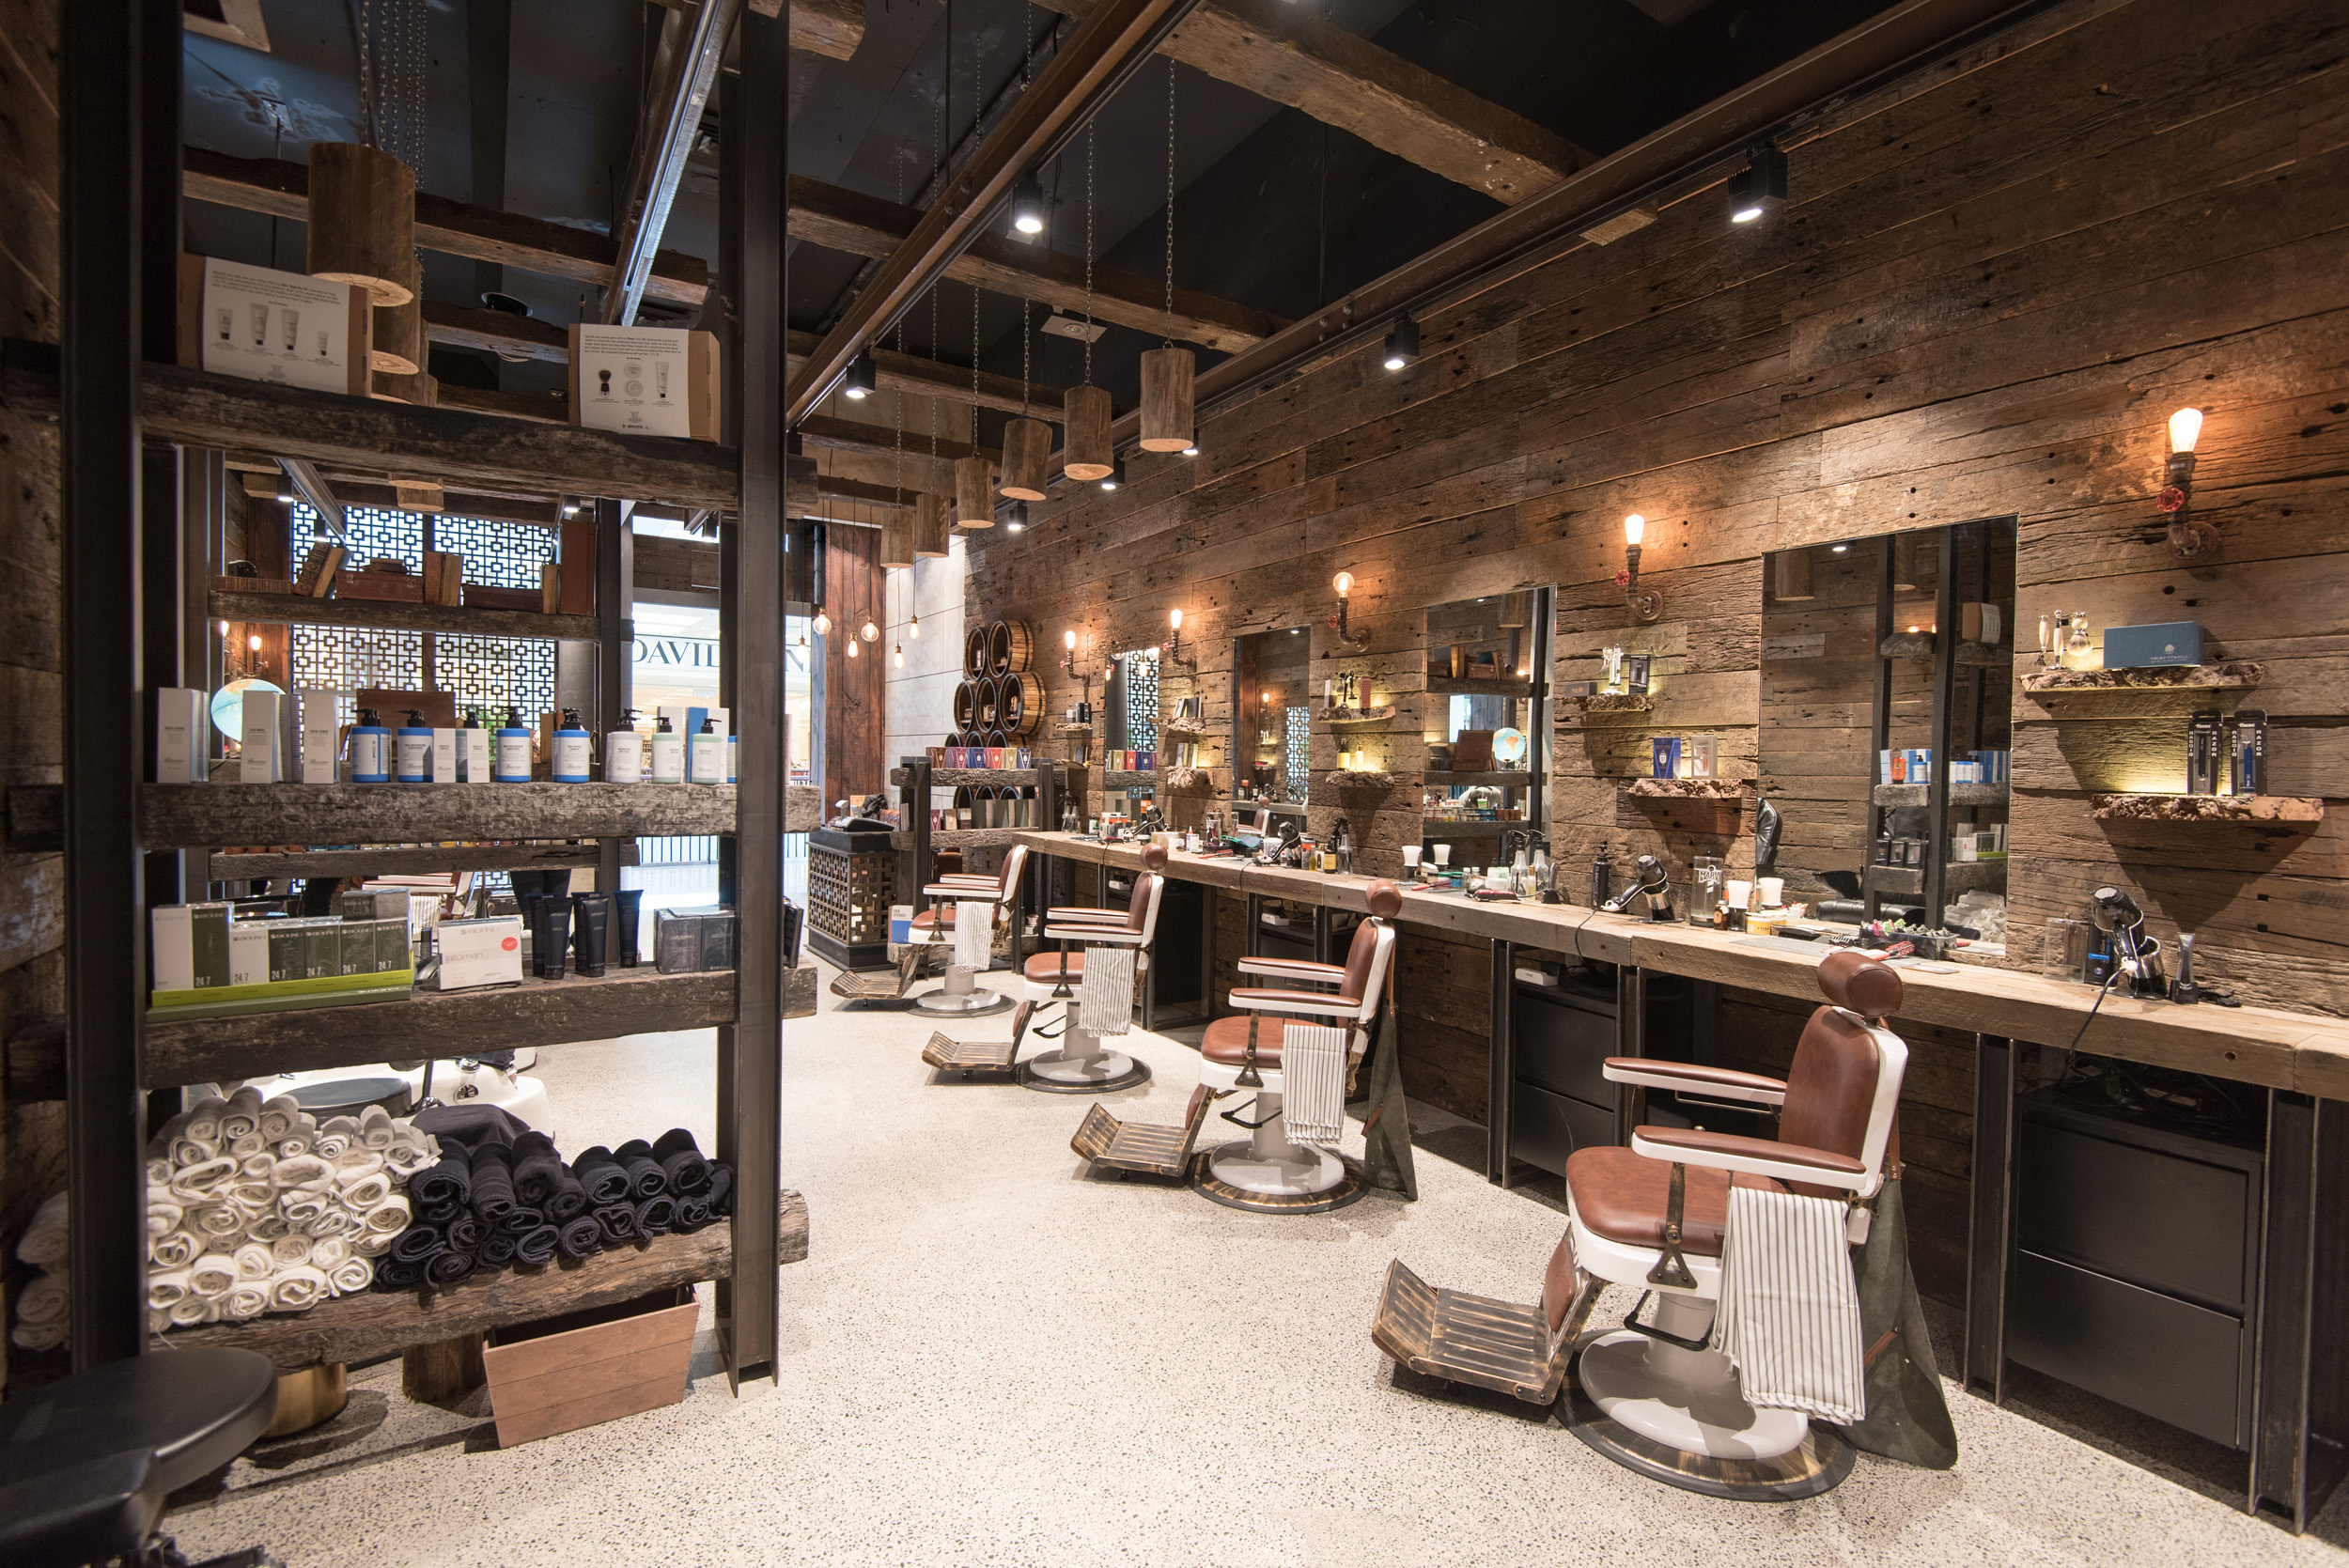 Man Cave Barber Hamilton : Man cave barber shop the best